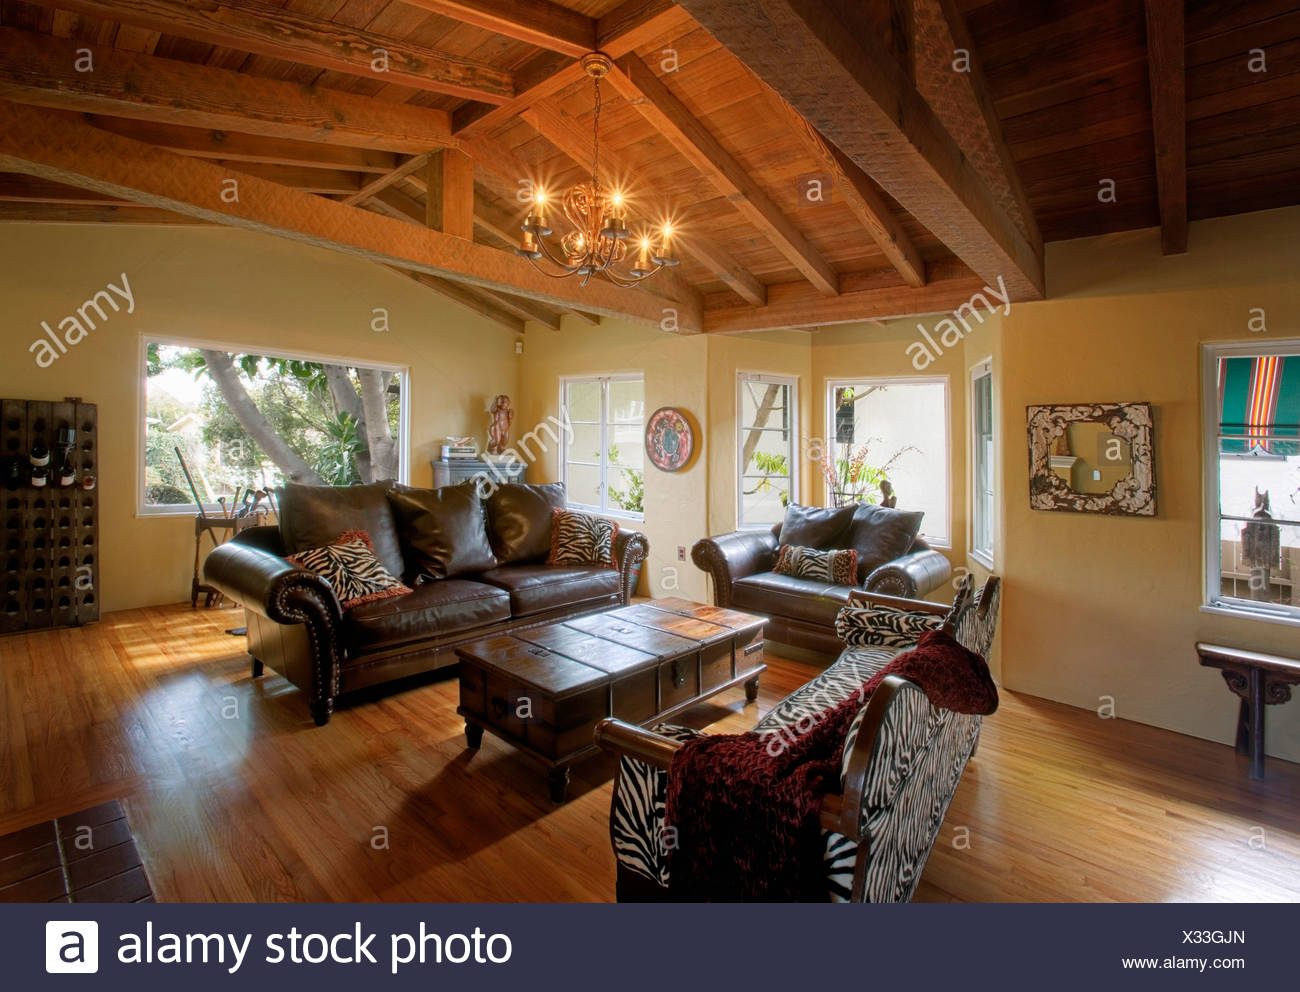 Fine Cozy Rustic Living Room With Vaulted Wood Ceiling Stock Download Free Architecture Designs Rallybritishbridgeorg